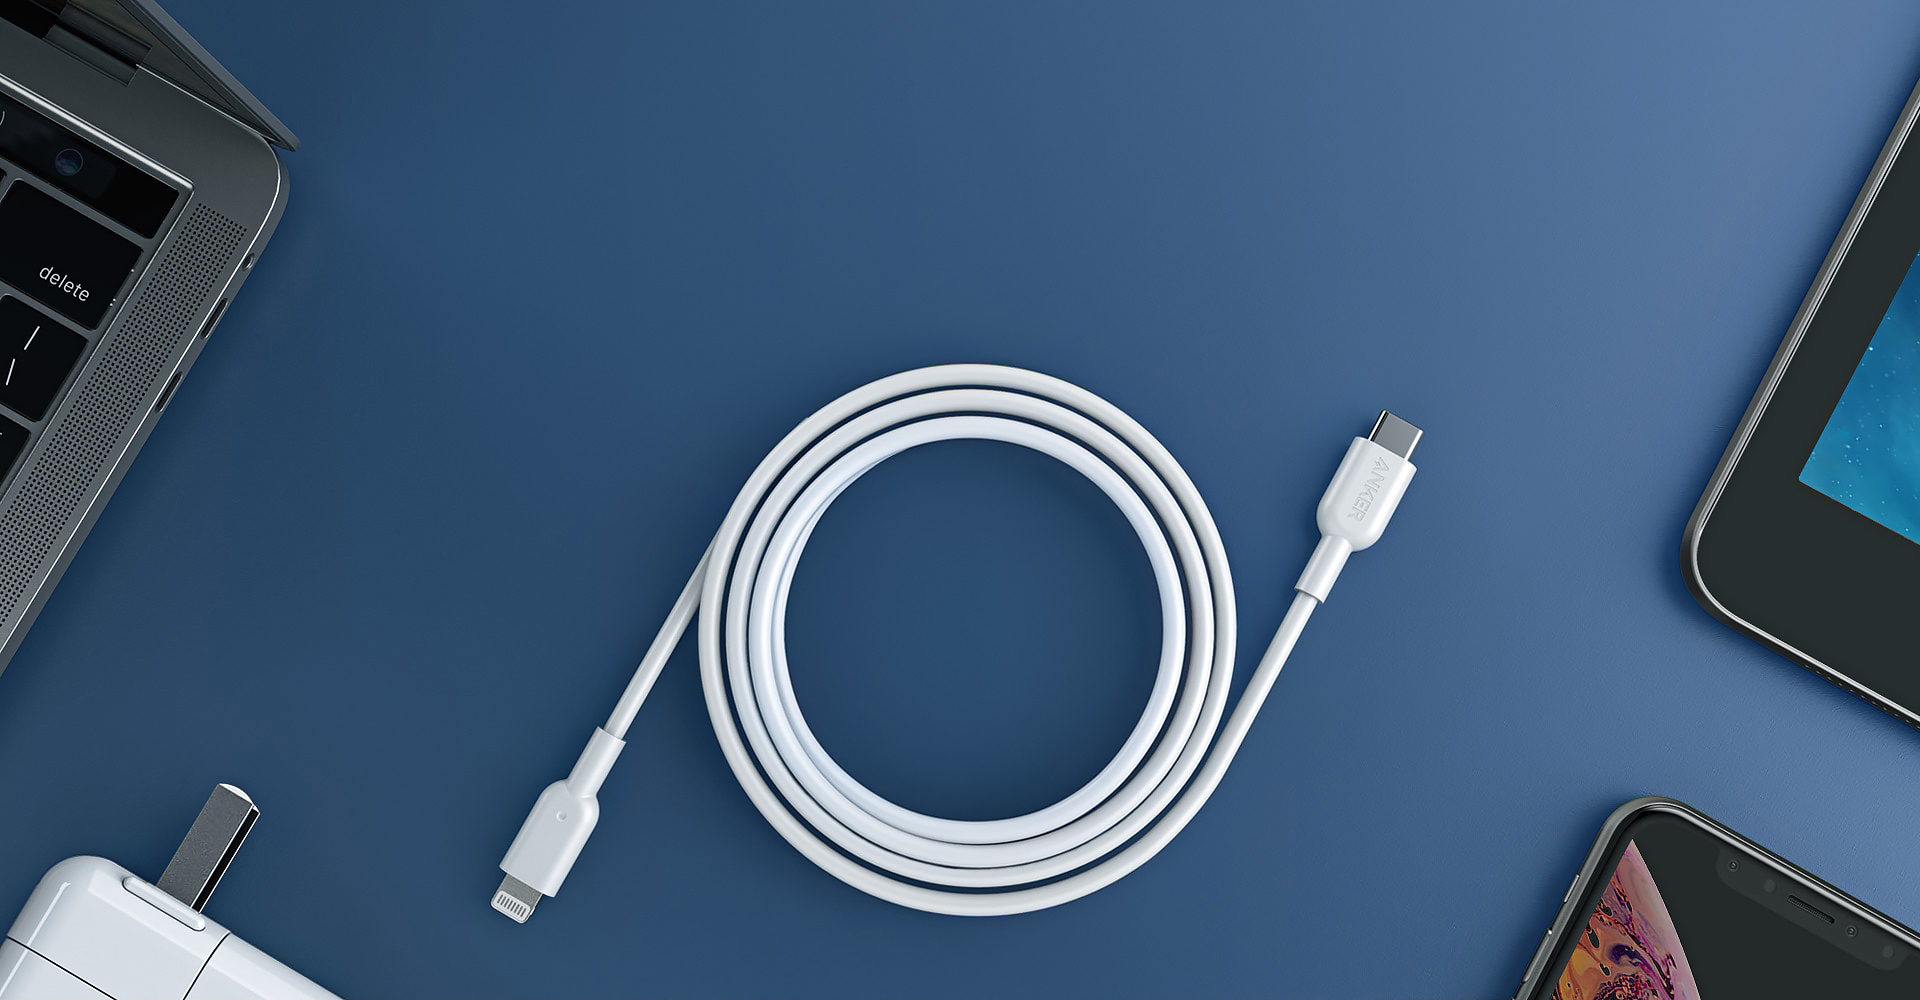 Anker's MFi-certified USB-C to Lightning cable launches this month